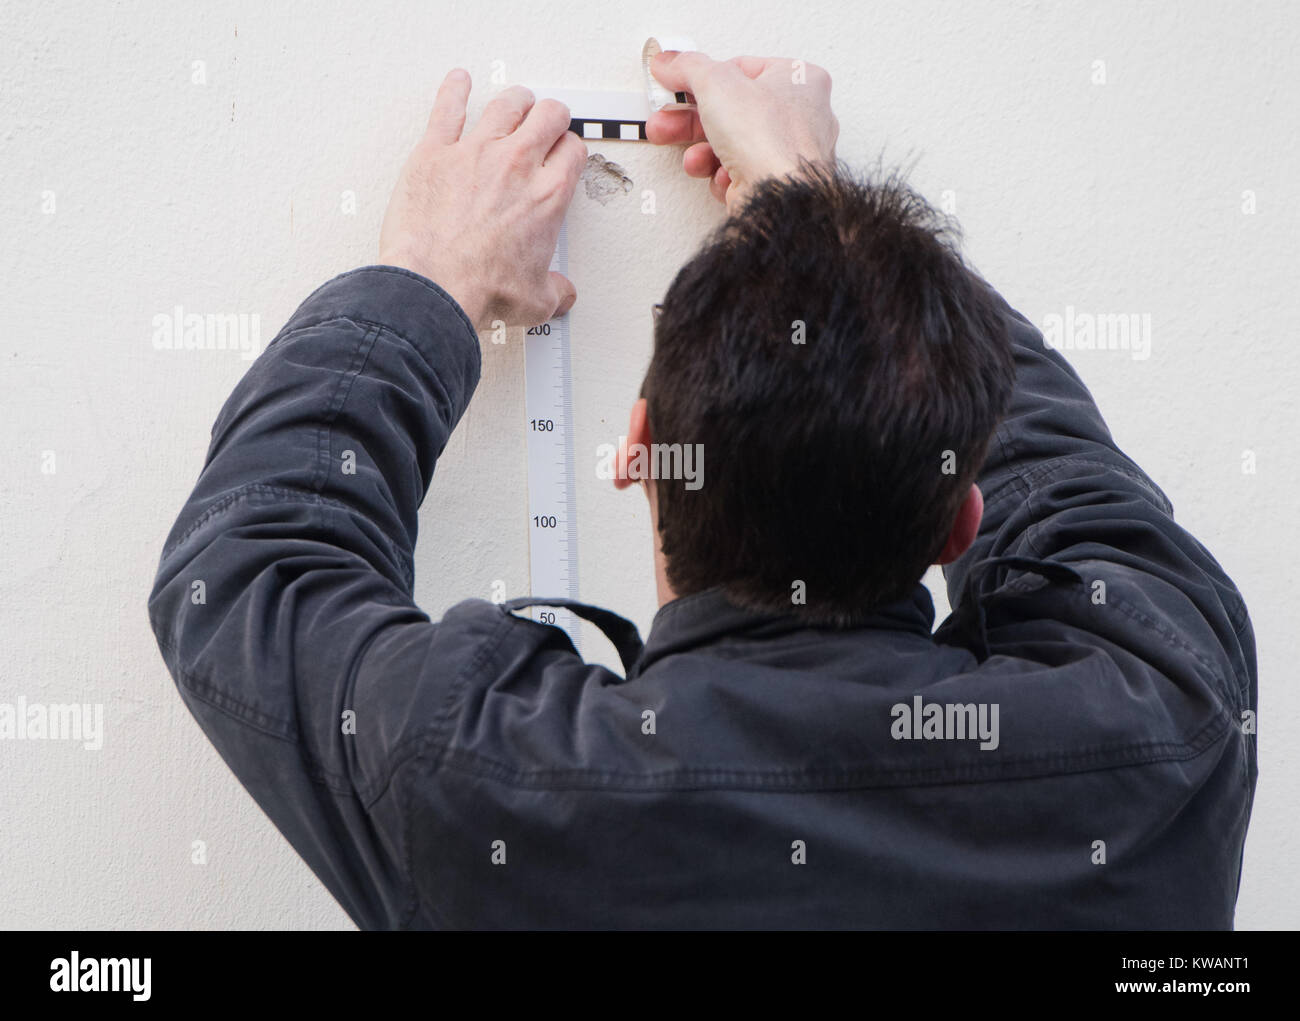 Salzgitter, Germany. 2nd Jan, 2018. A member of the crime scene unit of the police takes probes from a damaged wall, - Stock Image